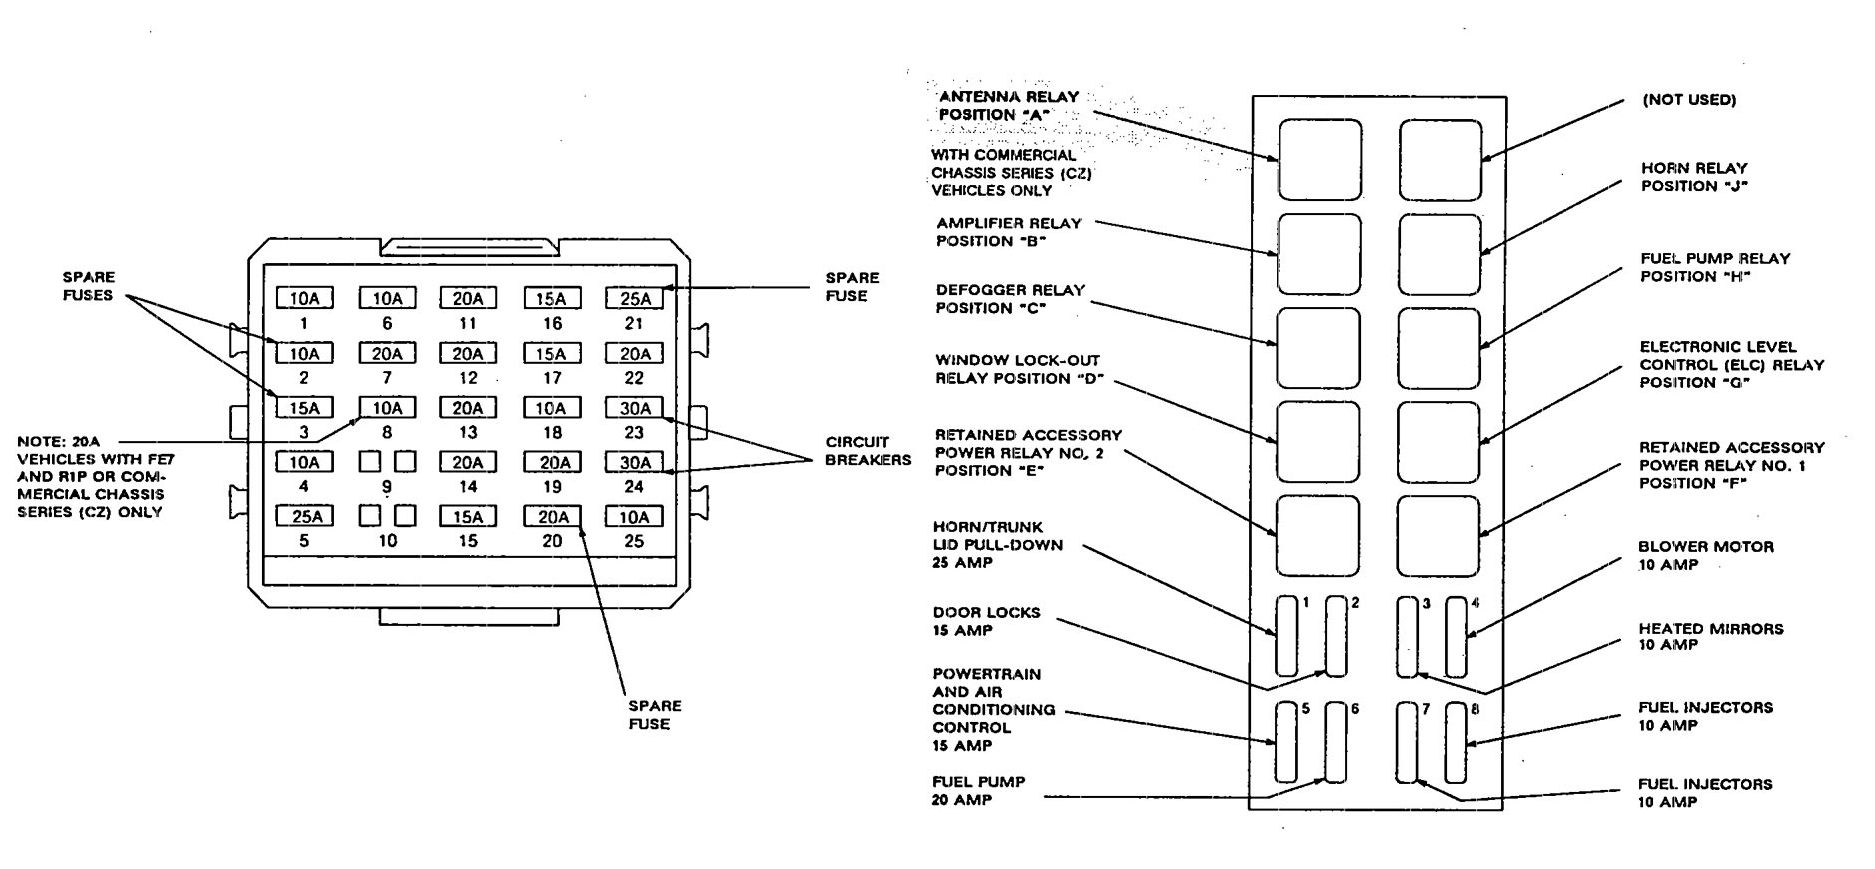 commercial fuse box cadillac commercial chassis  1992      fuse box diagram auto genius  cadillac commercial chassis  1992